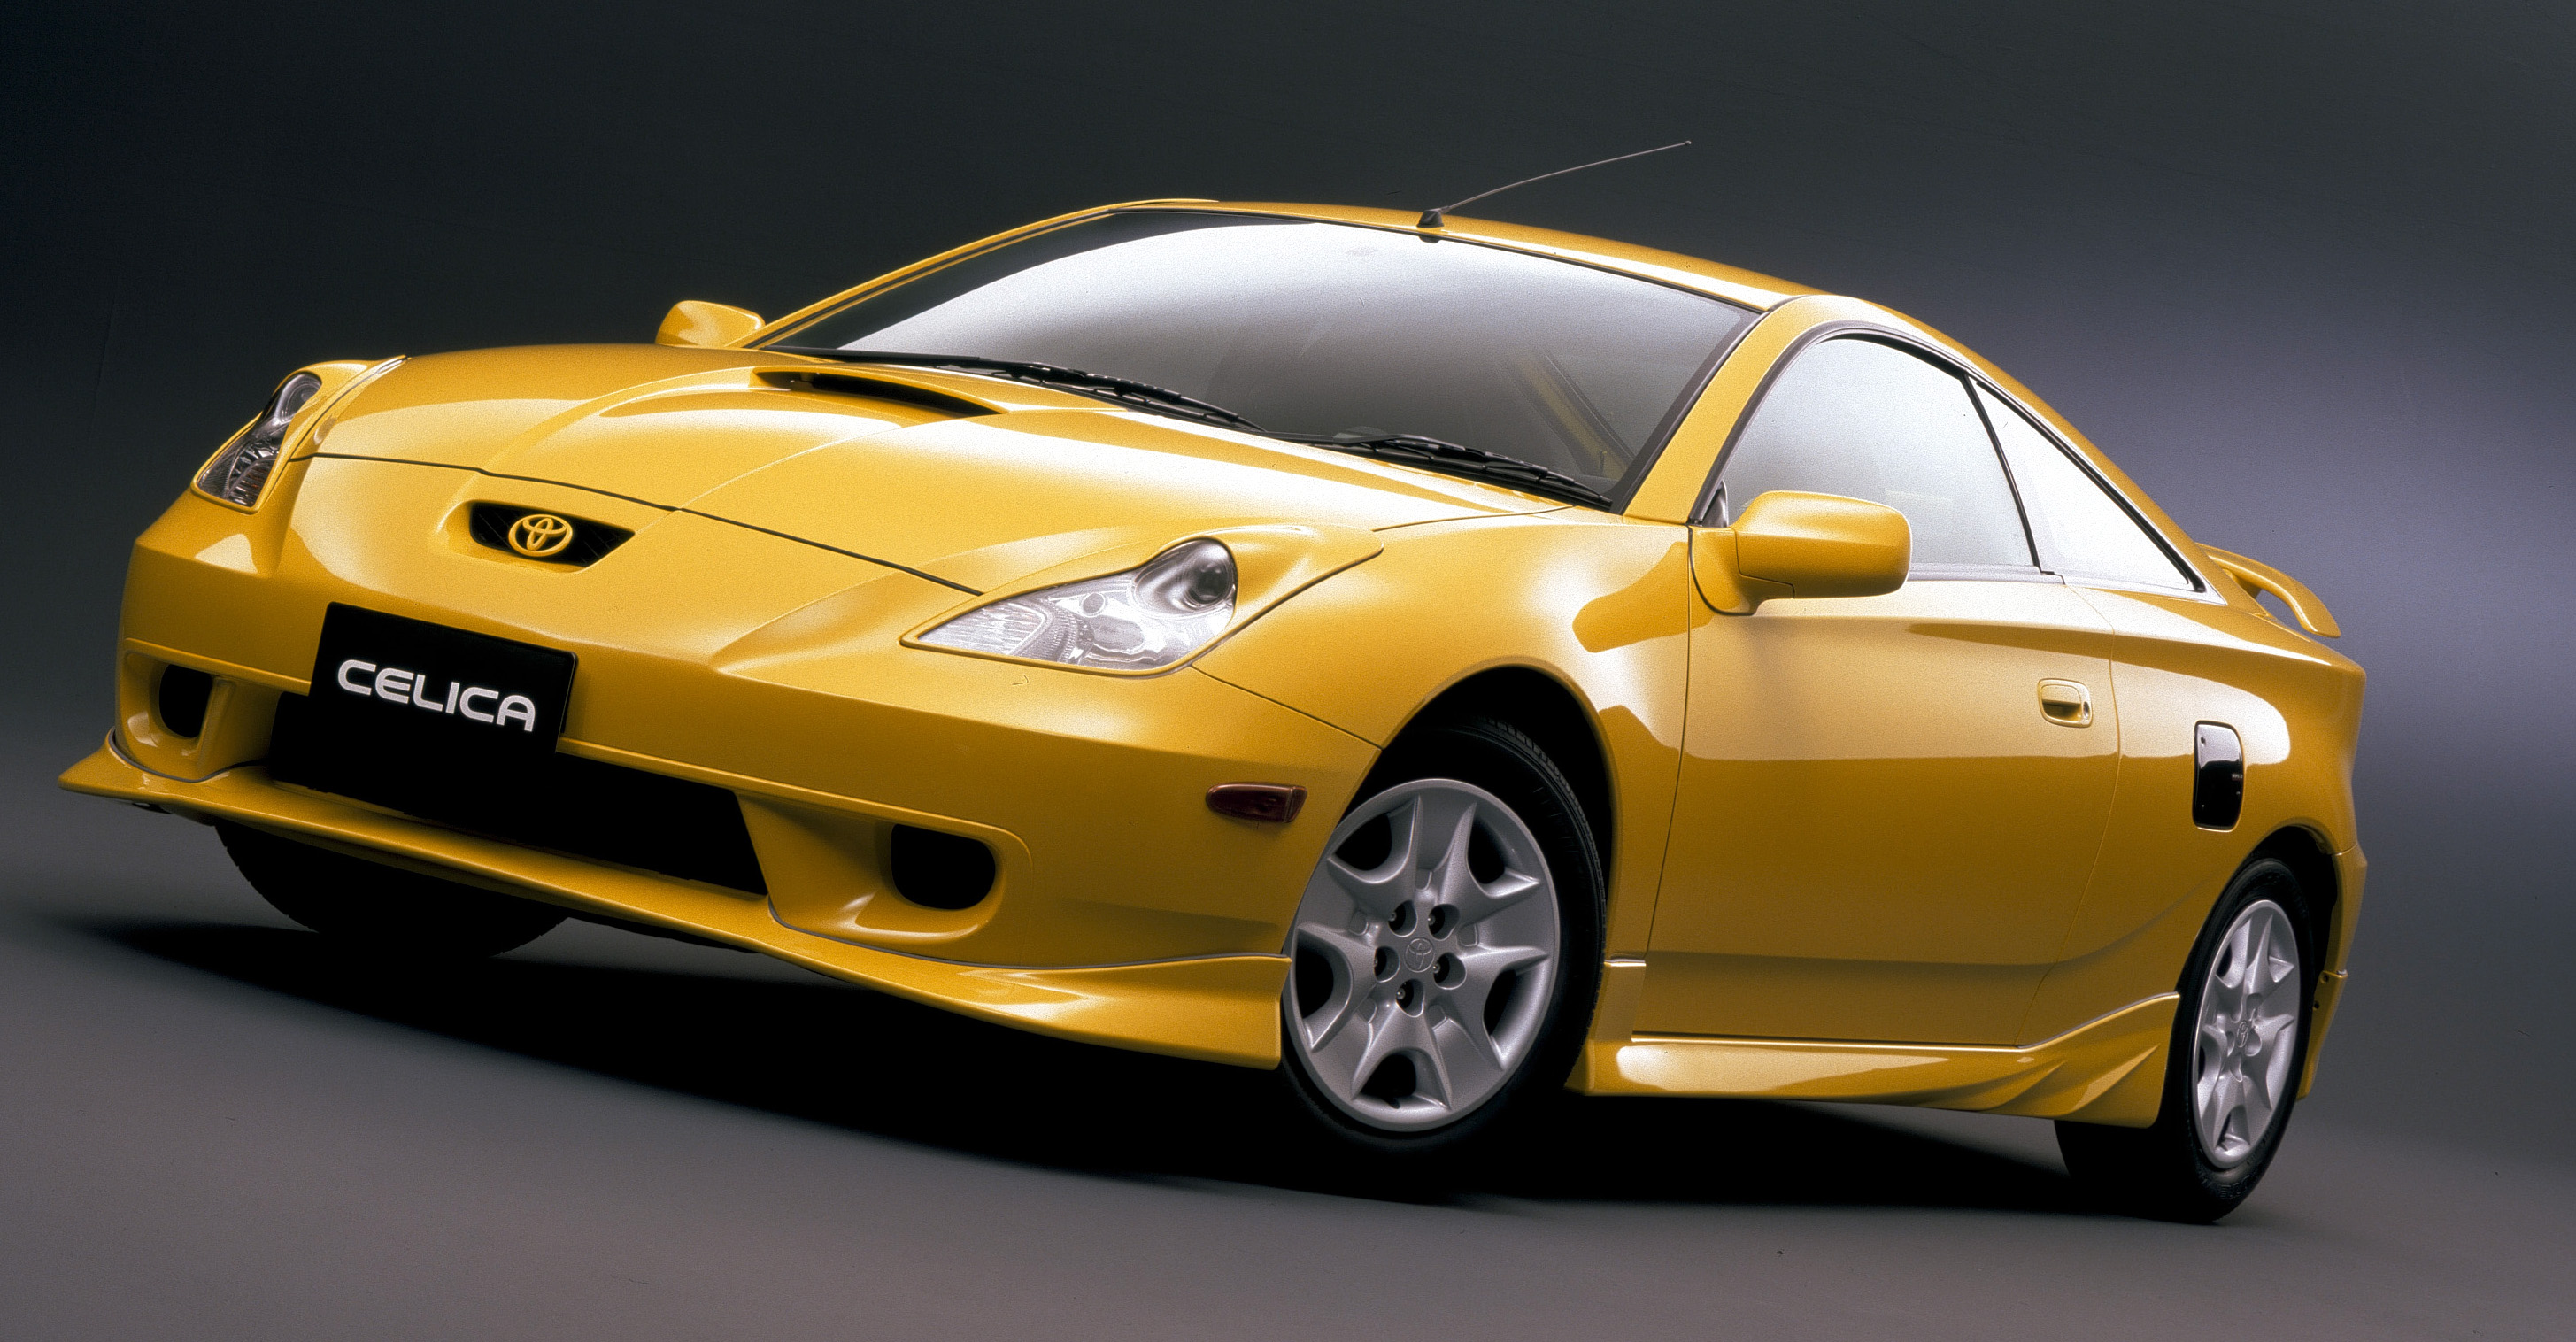 Top 20 Best Toyota Cars Wallpapers Gallery   Original Preview   PIC 2910x1516